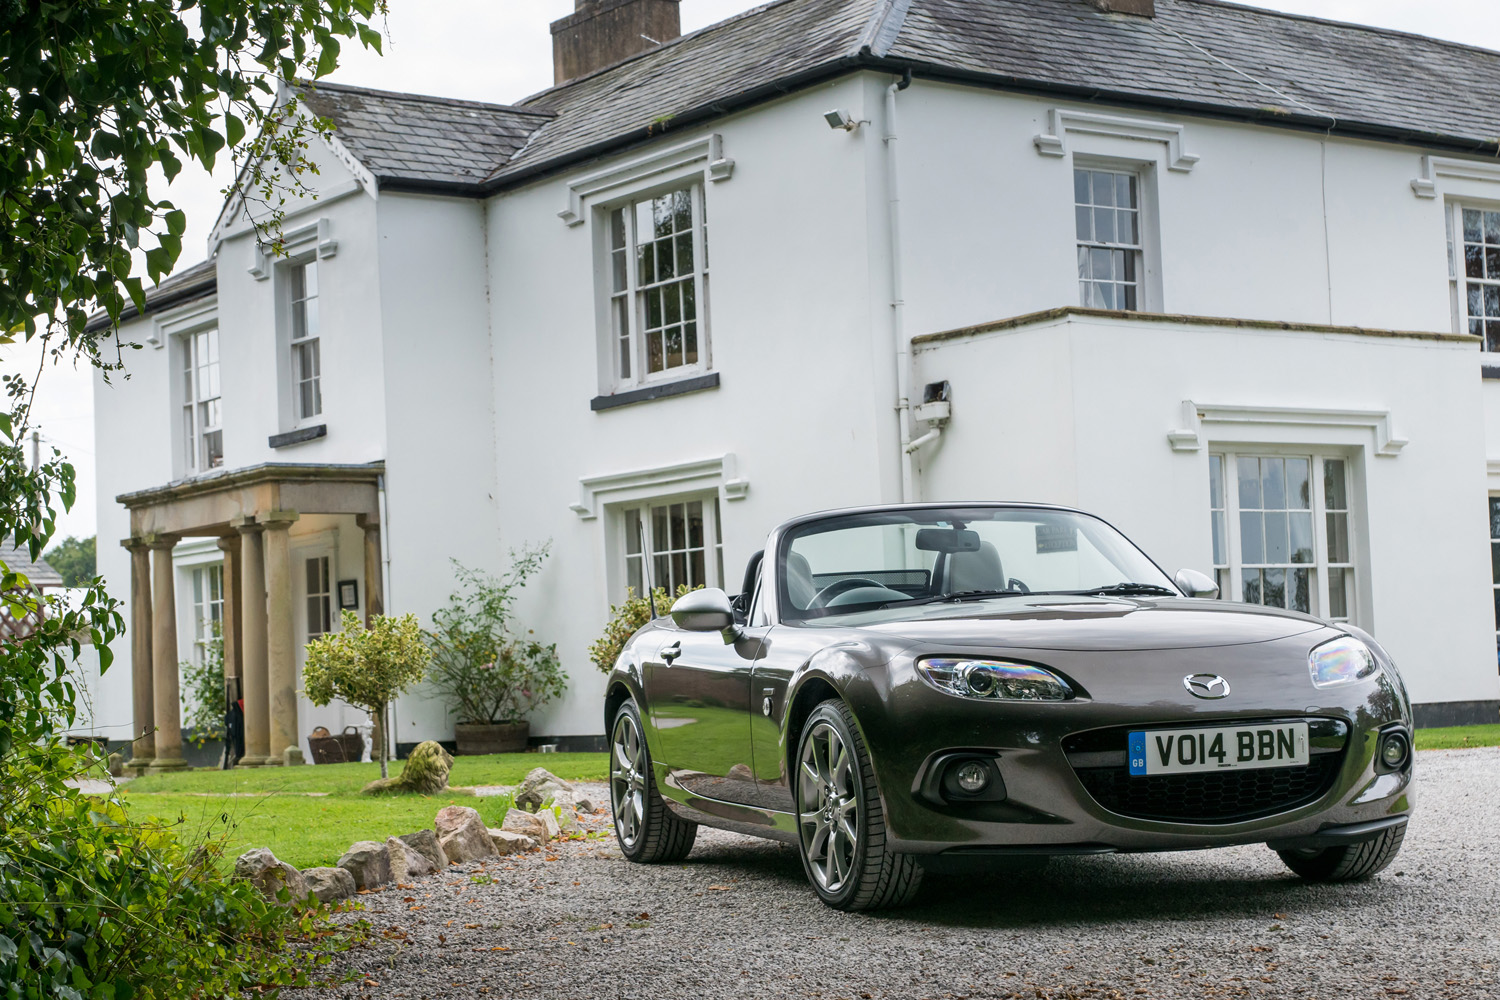 Mazda MX-5 wins Best Cabriolet in 2015 Auto Express Used Car